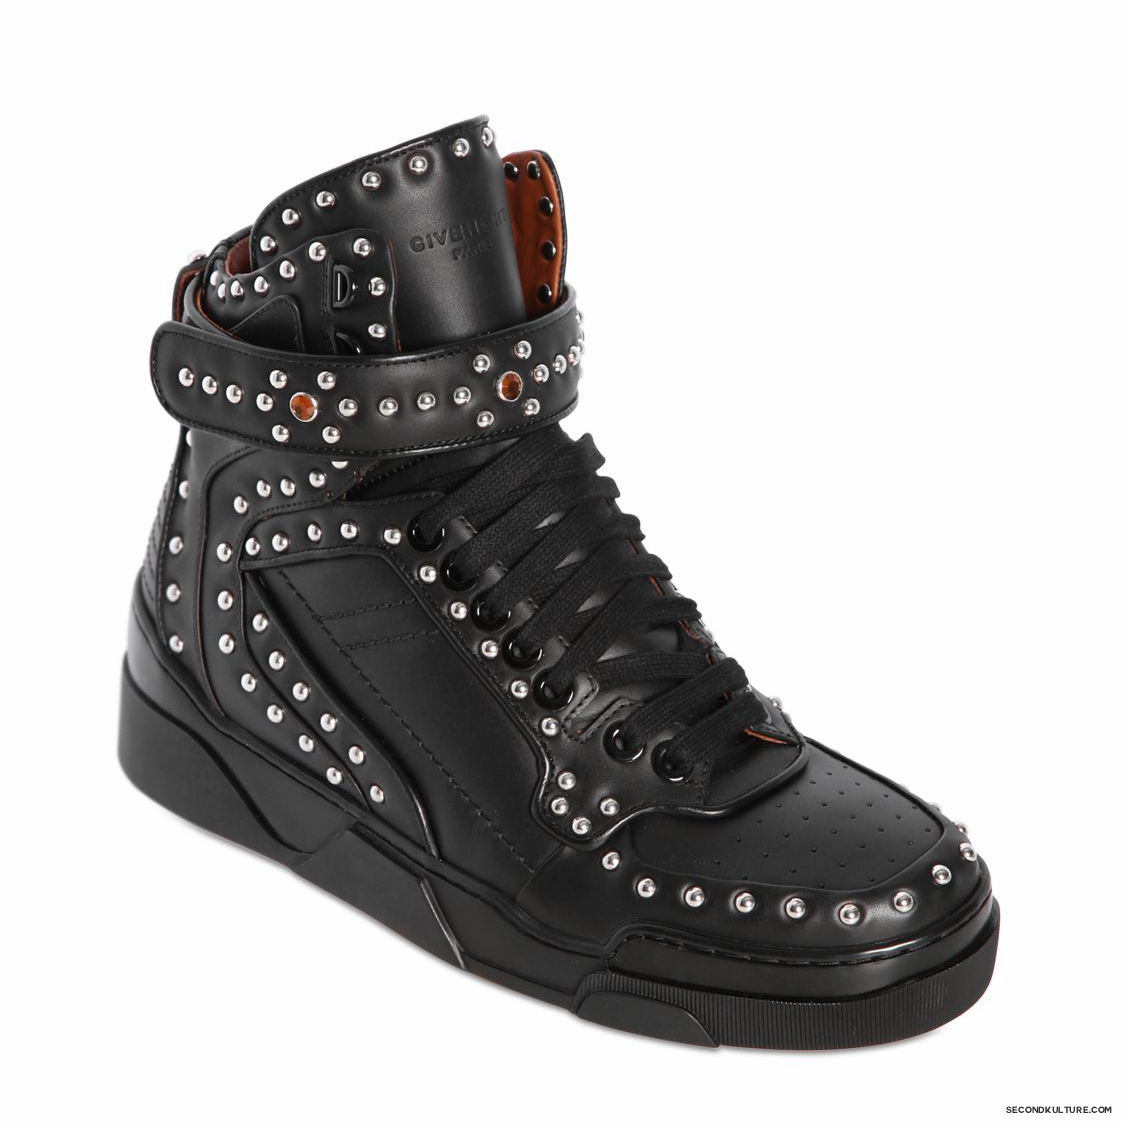 Givenchy-Black-Metal-and-Swarovski-Studded-Tyson-Leather-High-Top-Sneakers-Fall-Winter-2015-2